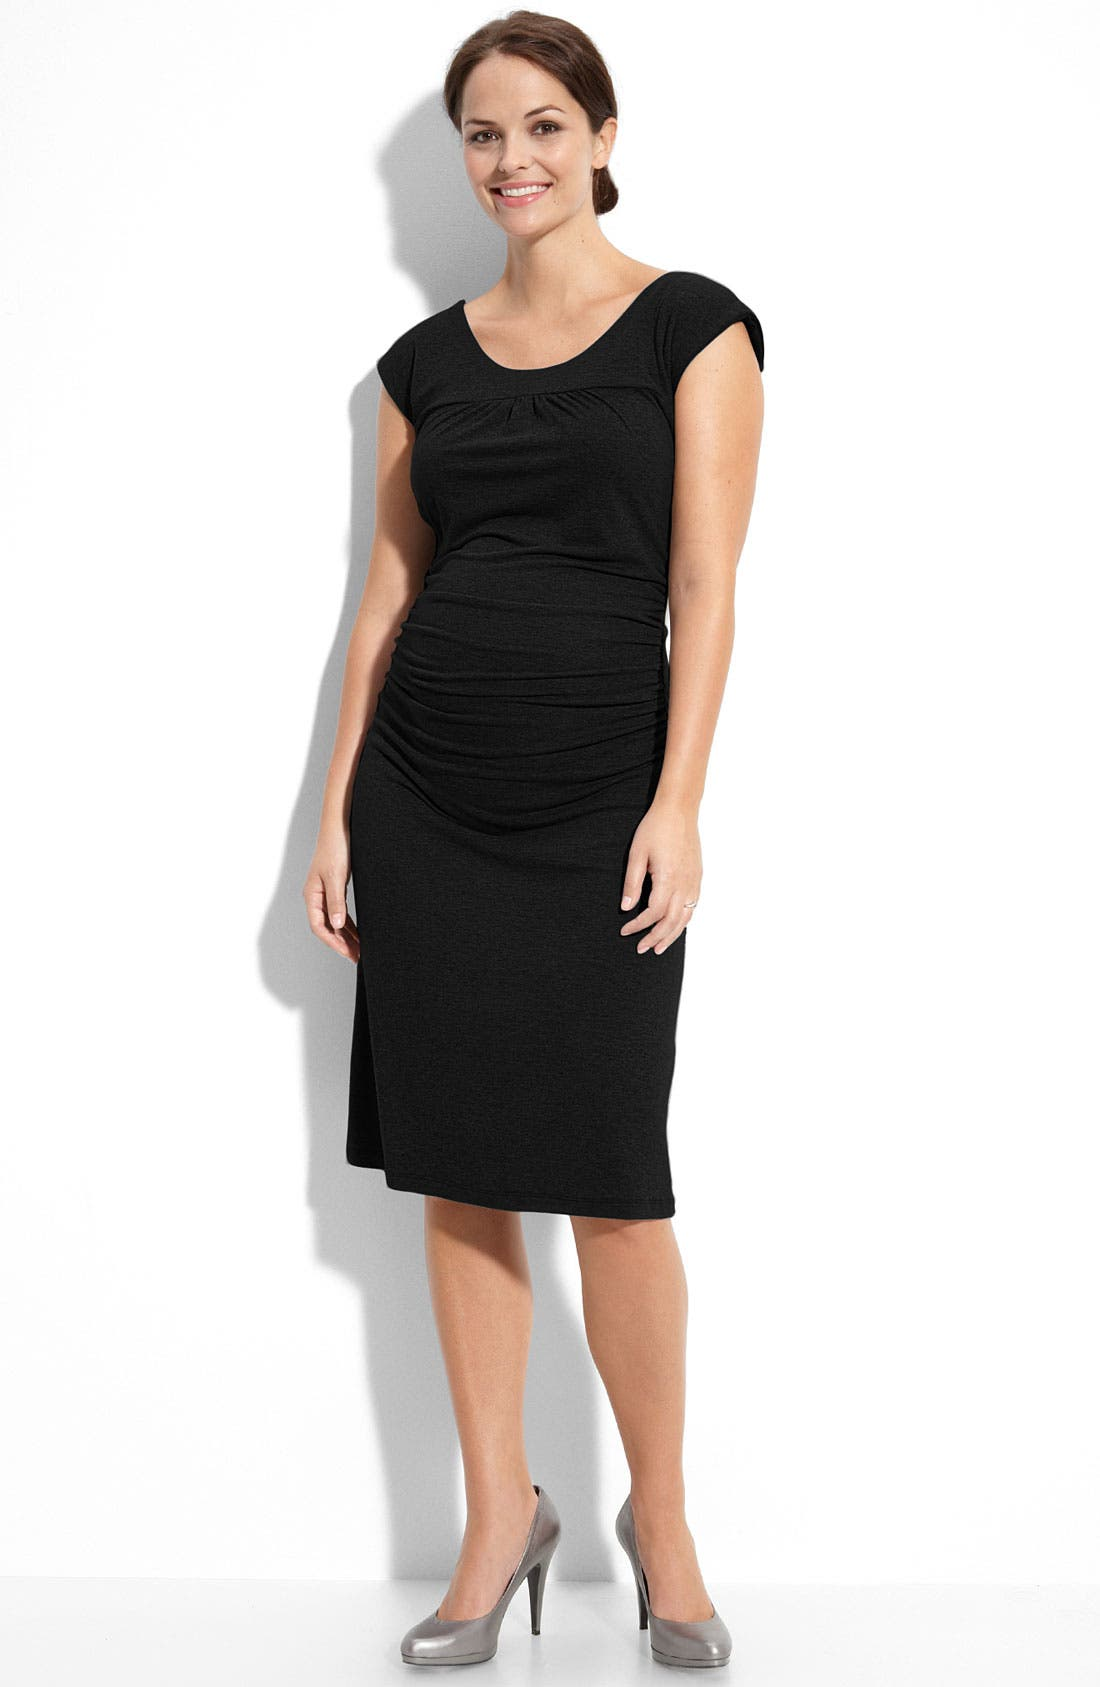 NOM MATERNITY 'Sophie' Ruched Maternity Dress, Main, color, 001